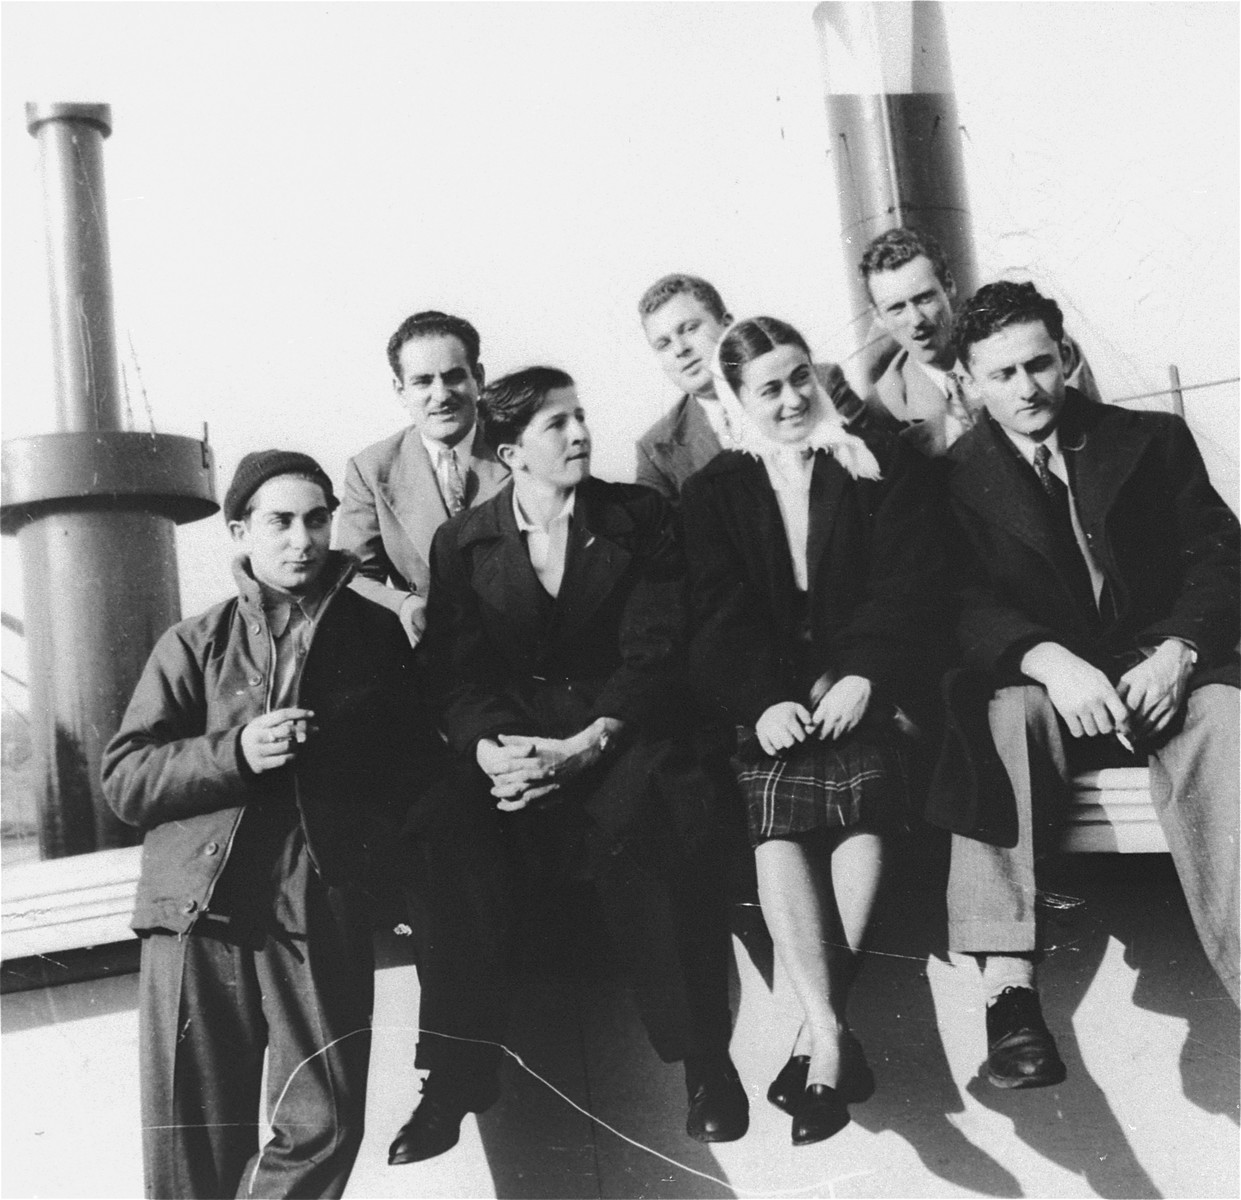 Crew members of the President Warfield (later the Exodus 1947) pose with friends on the deck of the ship before its departure for Europe.   Pictured from left to right are: Sam Schulman, Eli Kalm, Itzhak (Ike) Aronowitz, Joe Gilden, unnamed visitor, Paul Yarin and an unnamed visitor.